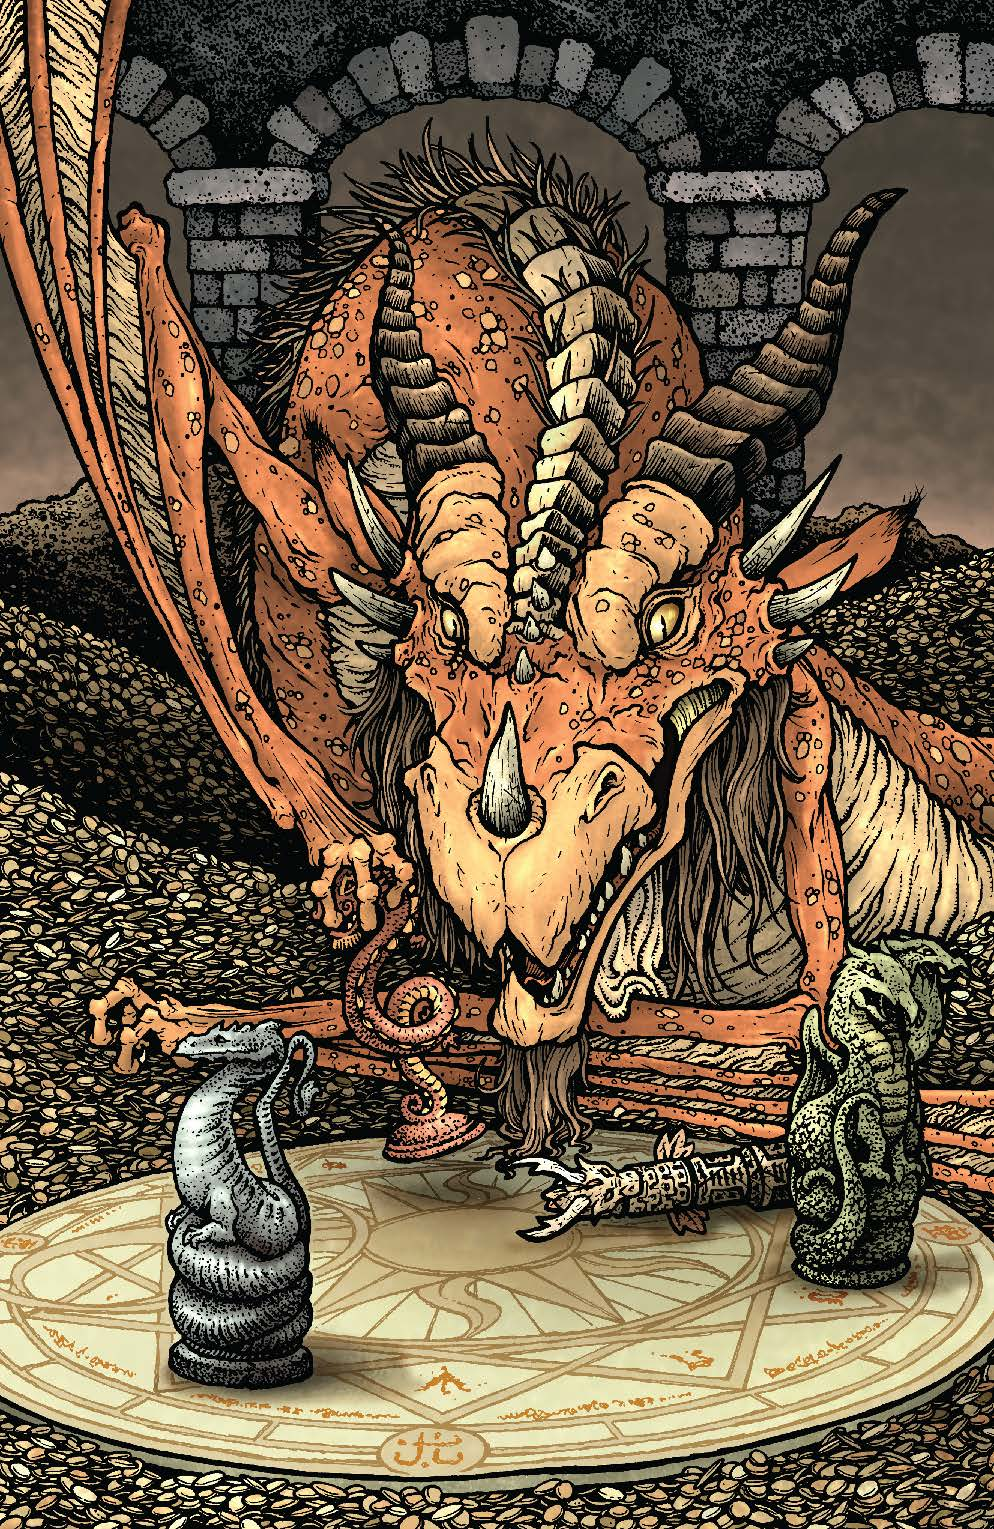 BOOM! Preview: Jim Henson's The Storyteller: Dragons #1